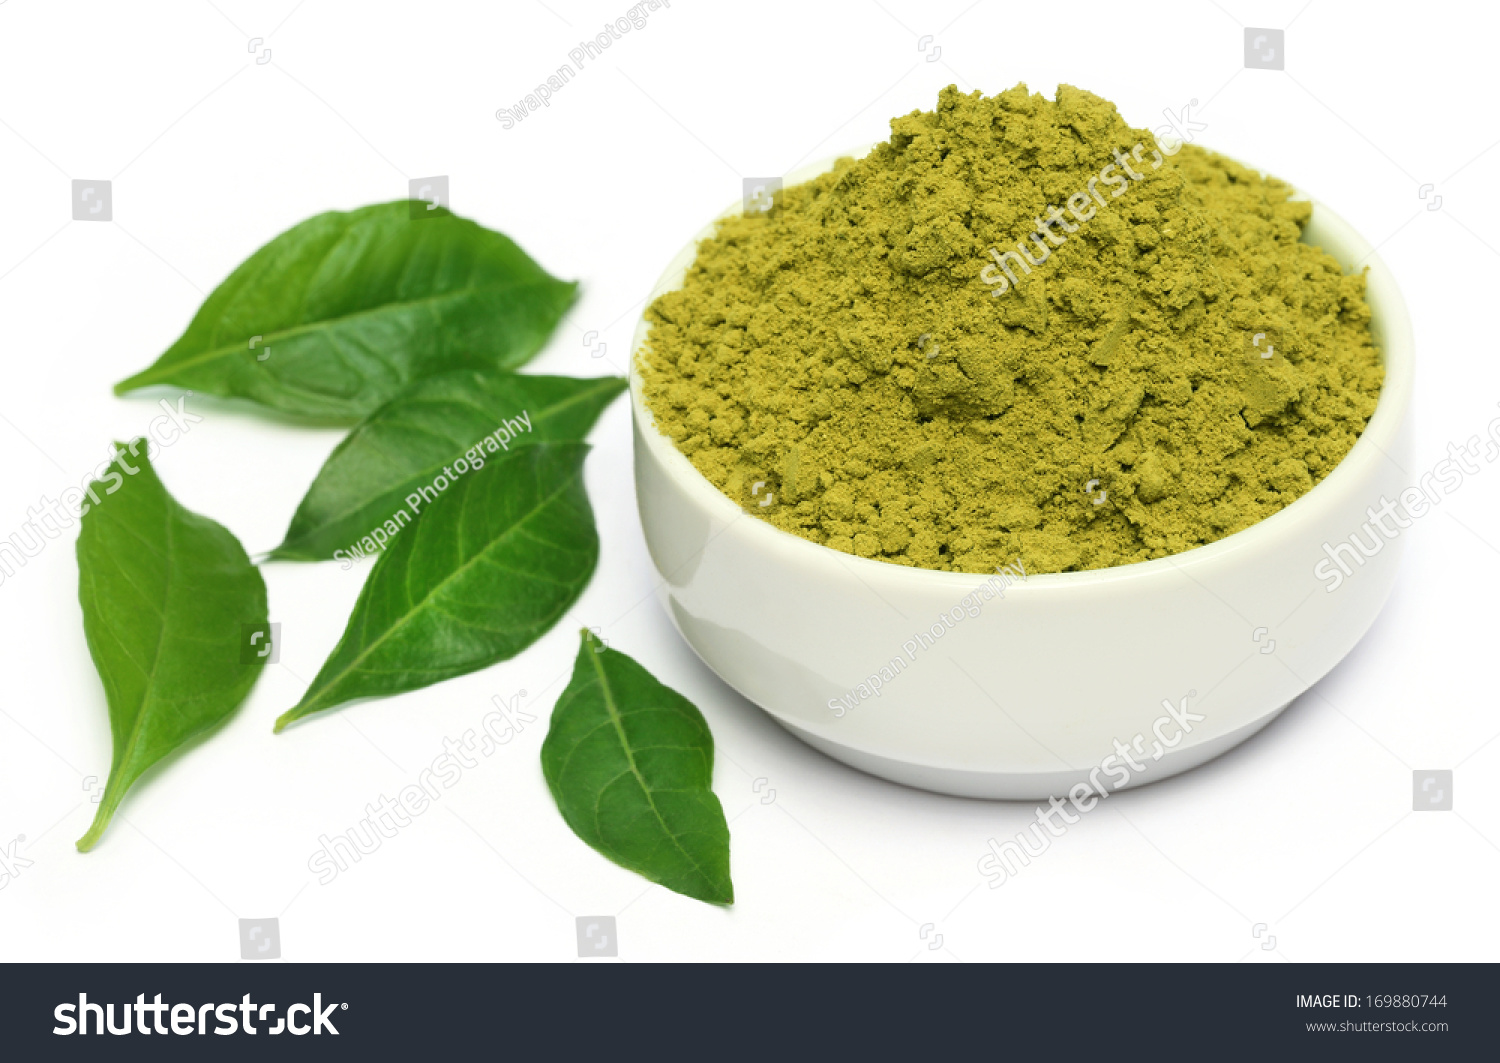 Henna leaves with powder on ceramic bowl over white background #3F761A